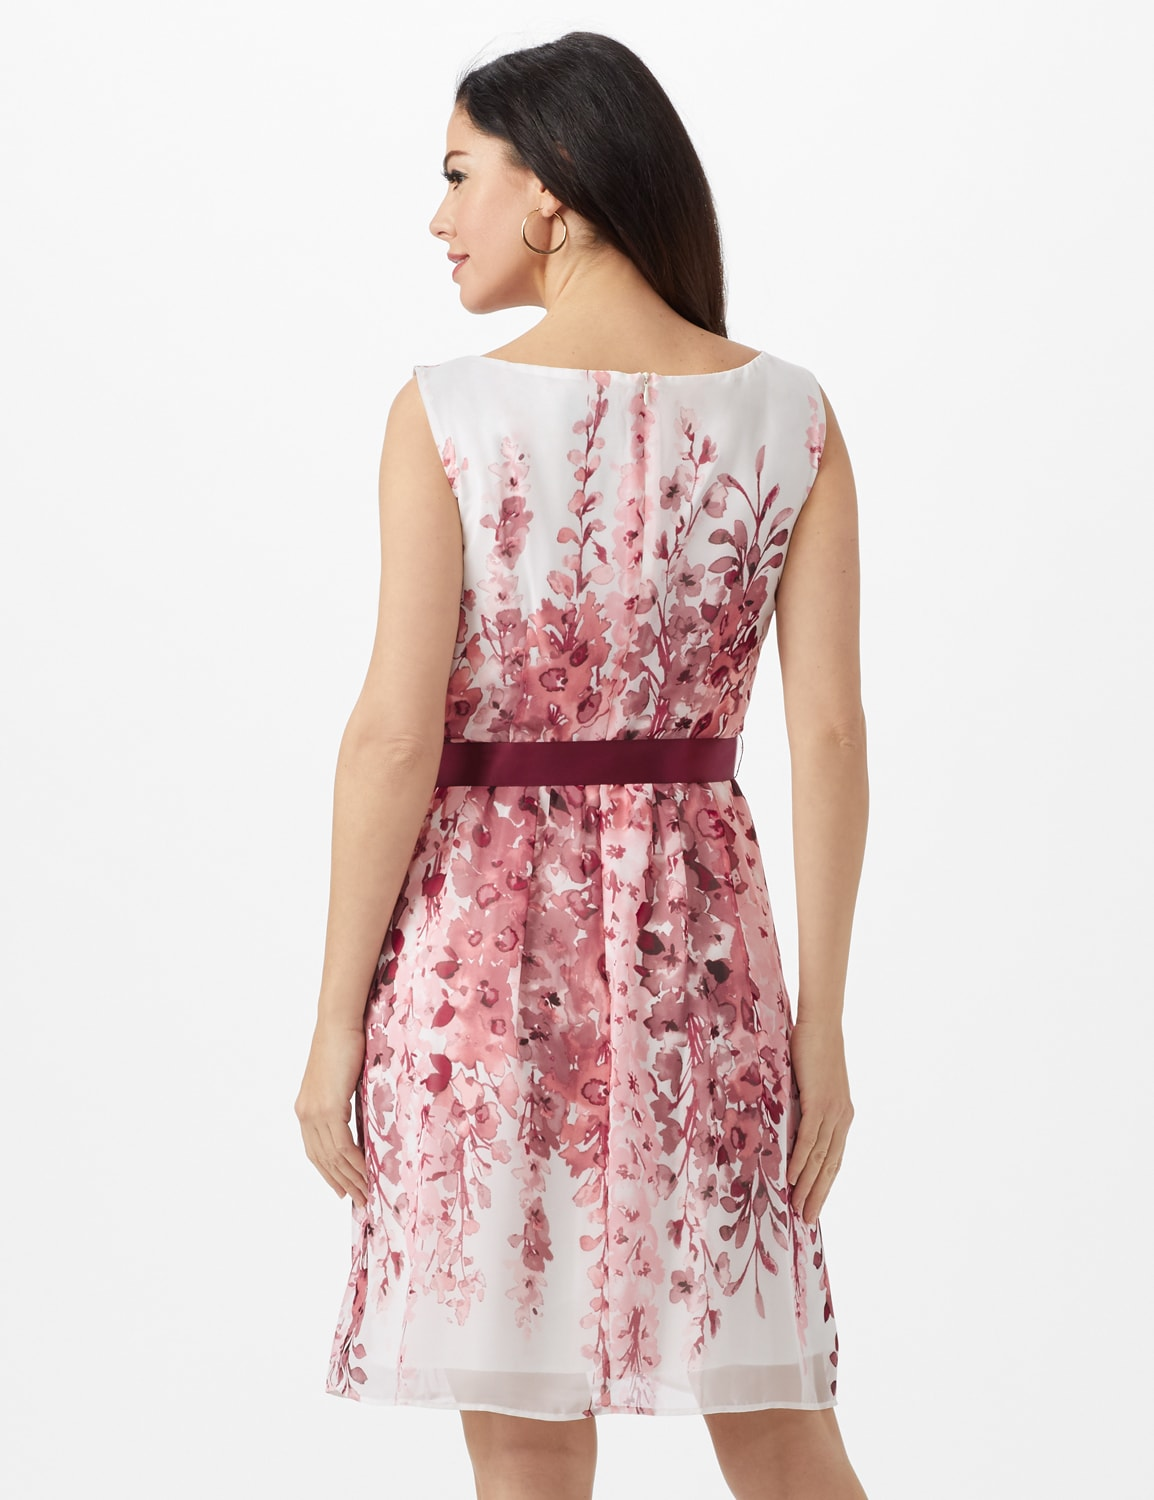 Double Vine Floral Boarder Dress with Satin Ribbon Belt - Dusty Rose - Back